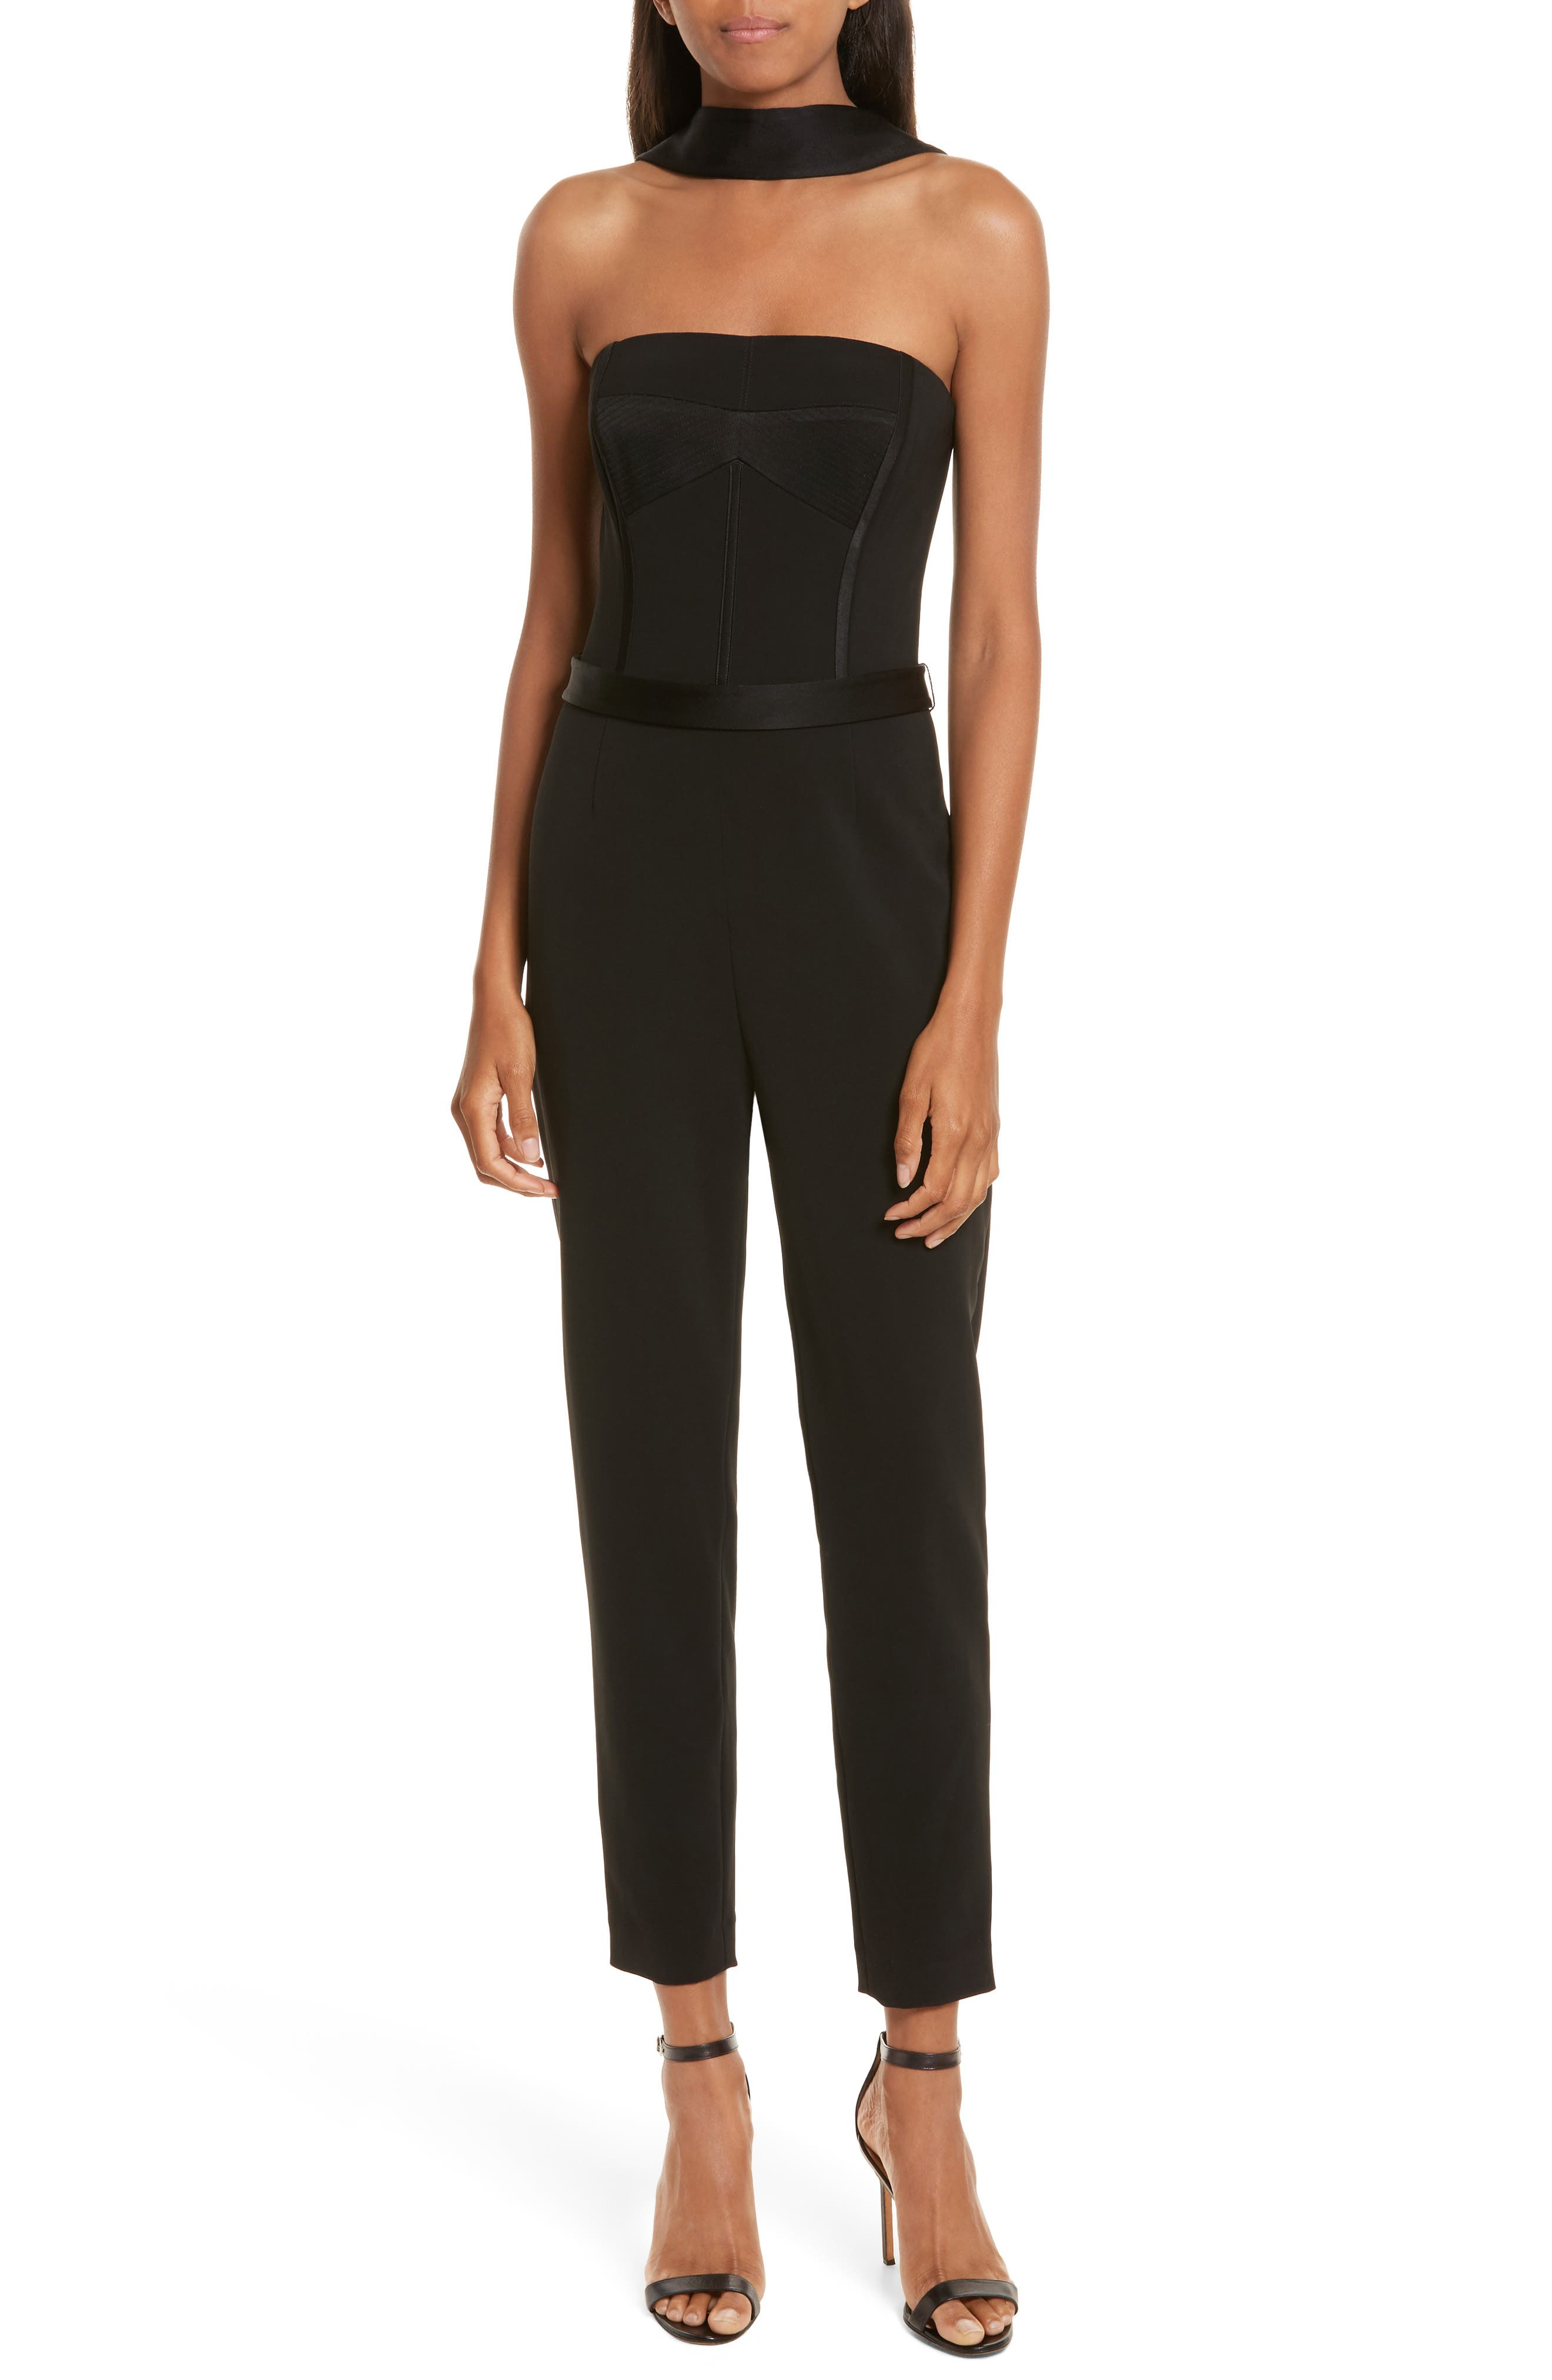 Diane Kruger x GREY Jason Wu Crepe Straight Leg Jumpsuit,                             Main thumbnail 1, color,                             Black